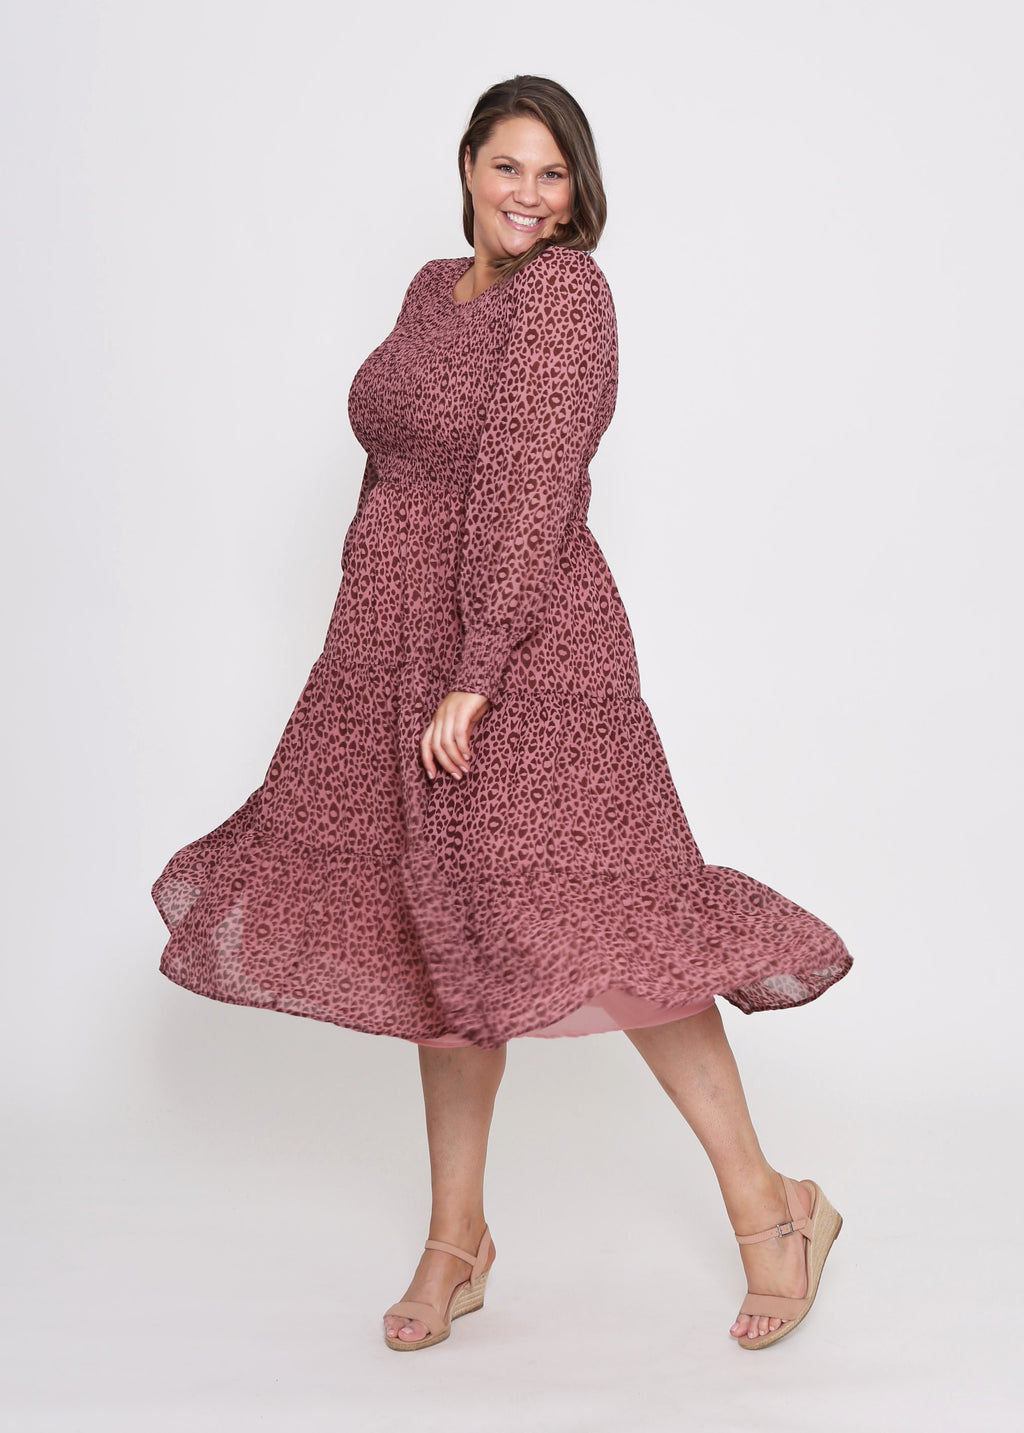 ZAREL DRESS - DARK ROSE LEOPARD